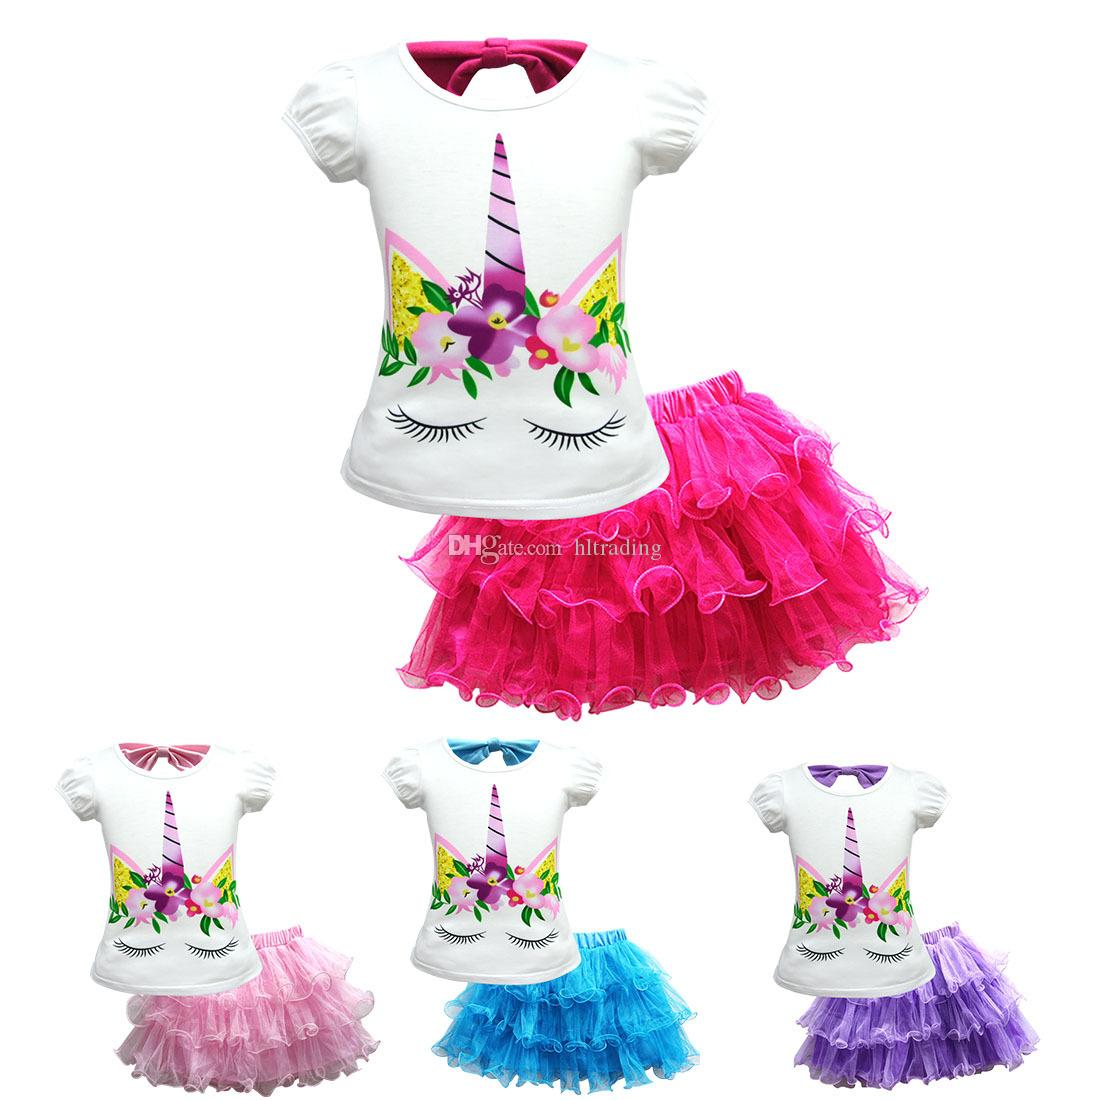 Baby girls outfits children unicorn print top+Tutu lace Mesh skirts 2pcs/set 2019 summer fashion Boutique kids Clothing Sets C5693